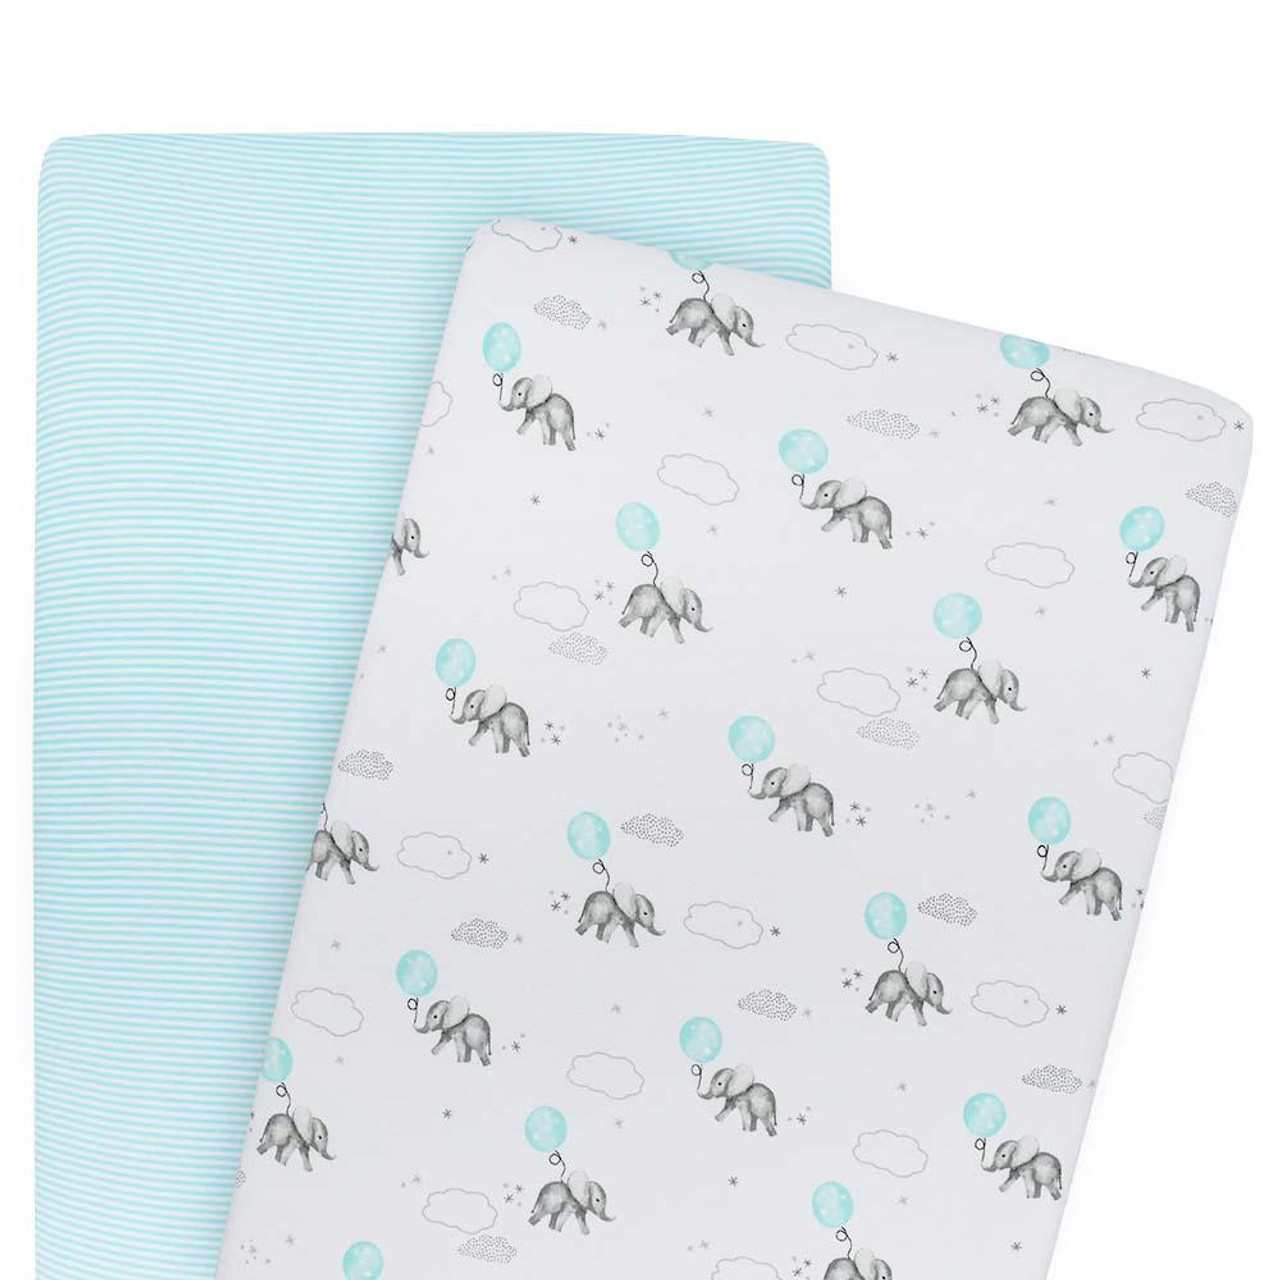 Living Textiles Cotton Cradle Fitted Sheet 2pk at Baby Barn Discounts Living Textile's fitted sheets crafted from soft and breathable premium 100% cotton jersey.